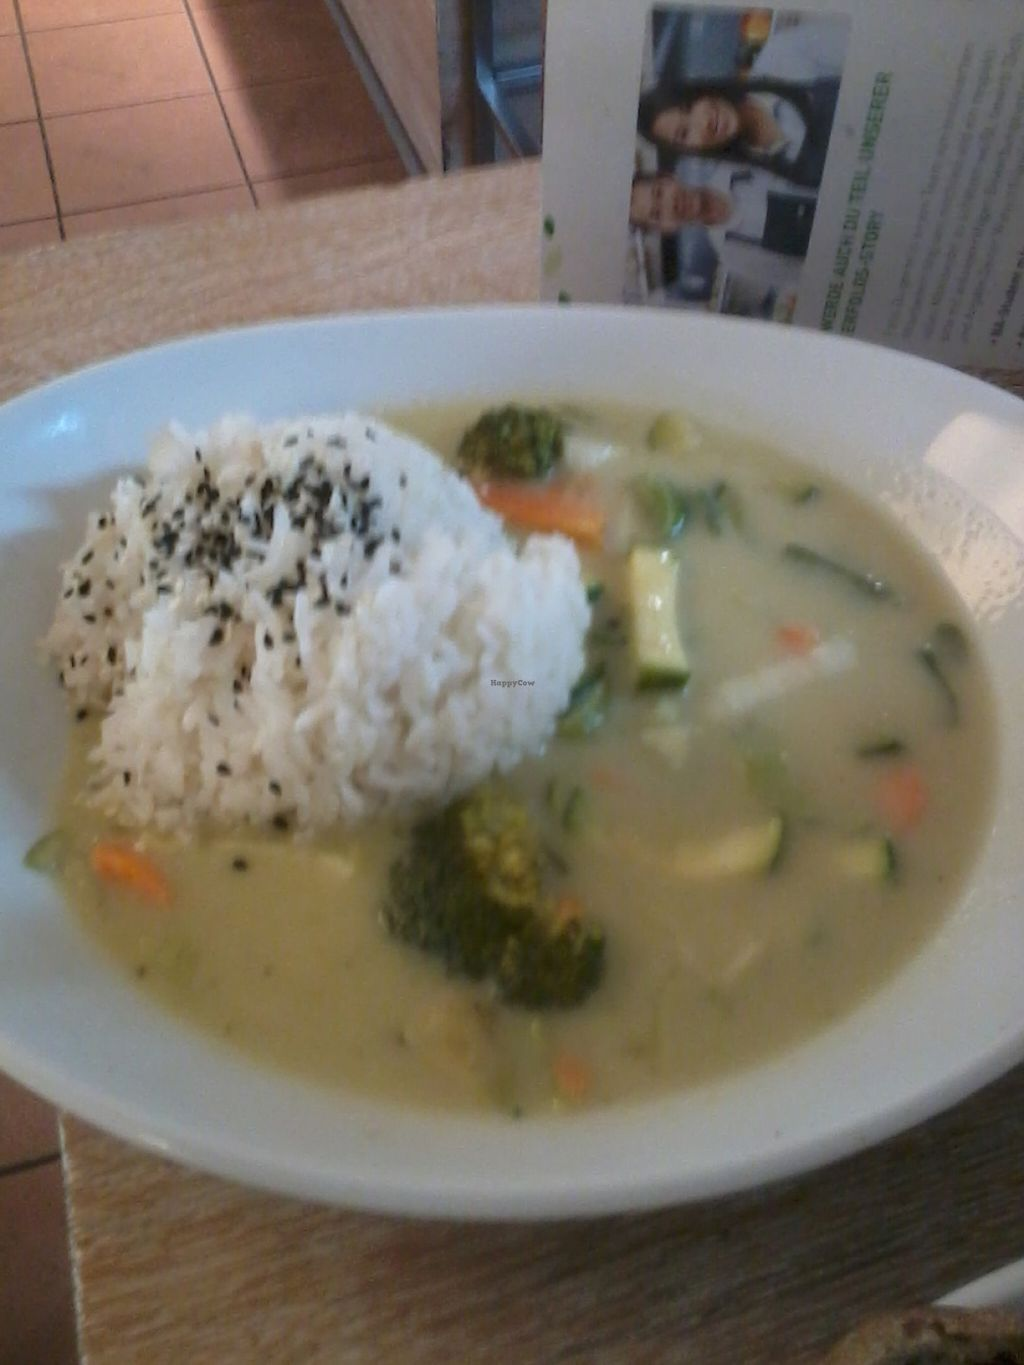 """Photo of Dean & David - Schellingstr  by <a href=""""/members/profile/deadpledge"""">deadpledge</a> <br/>Vegan green veggie curry and rice <br/> July 28, 2016  - <a href='/contact/abuse/image/77182/162949'>Report</a>"""